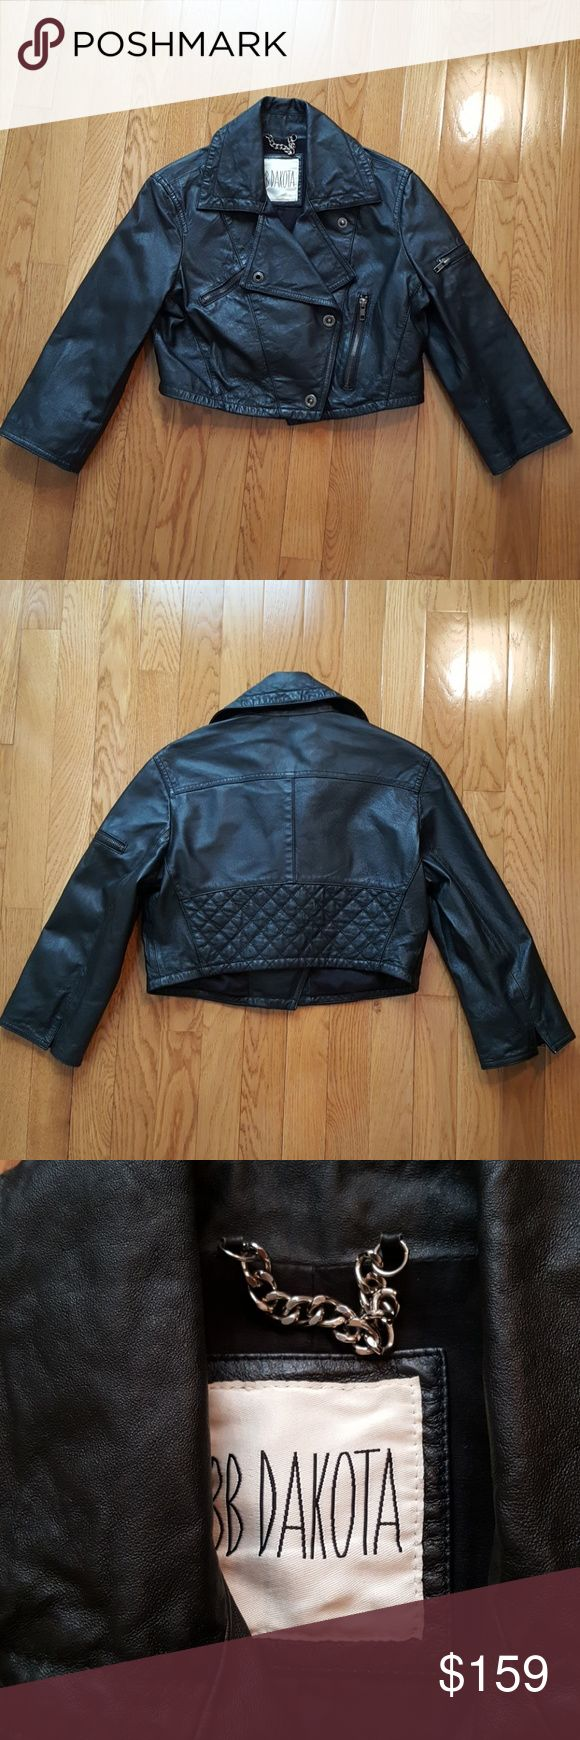 Genuine Leather Cropped 3/4 Sleeve Moto Jacket Excellent pre-owned condition. BB Dakota black motorcycle jacket. Genuine Leather. 3/4 sleeves, cropped length. Slightly distressed crinkly finish with awesome wrinkled edges. Antique silver hardware, very cool and unique snaps. Size XS - S. BB Dakota Jackets & Coats